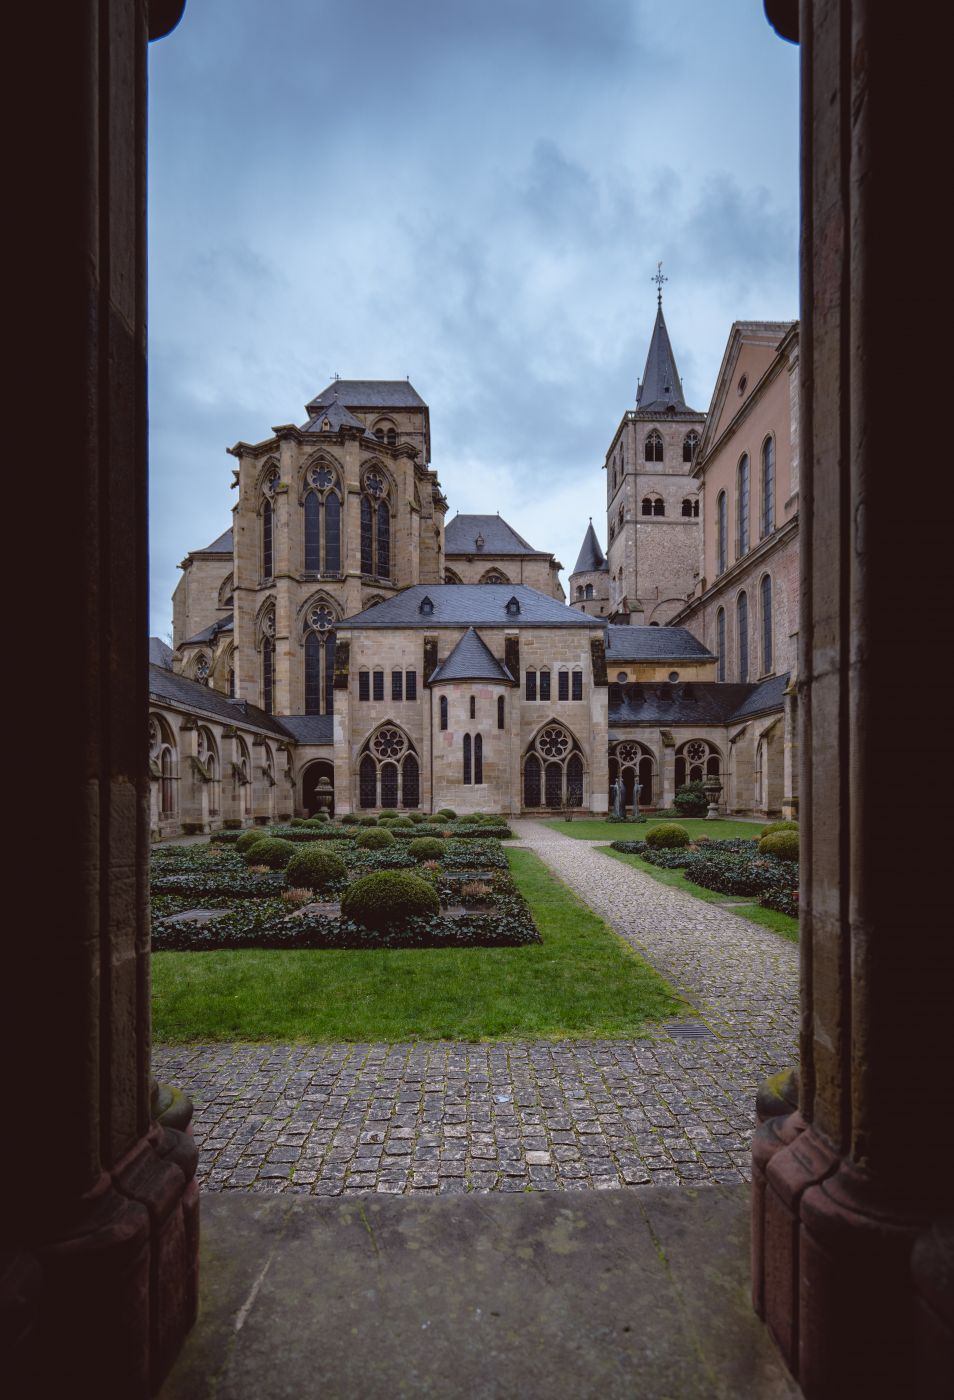 Backyard of the Cathedral in Trier, Germany